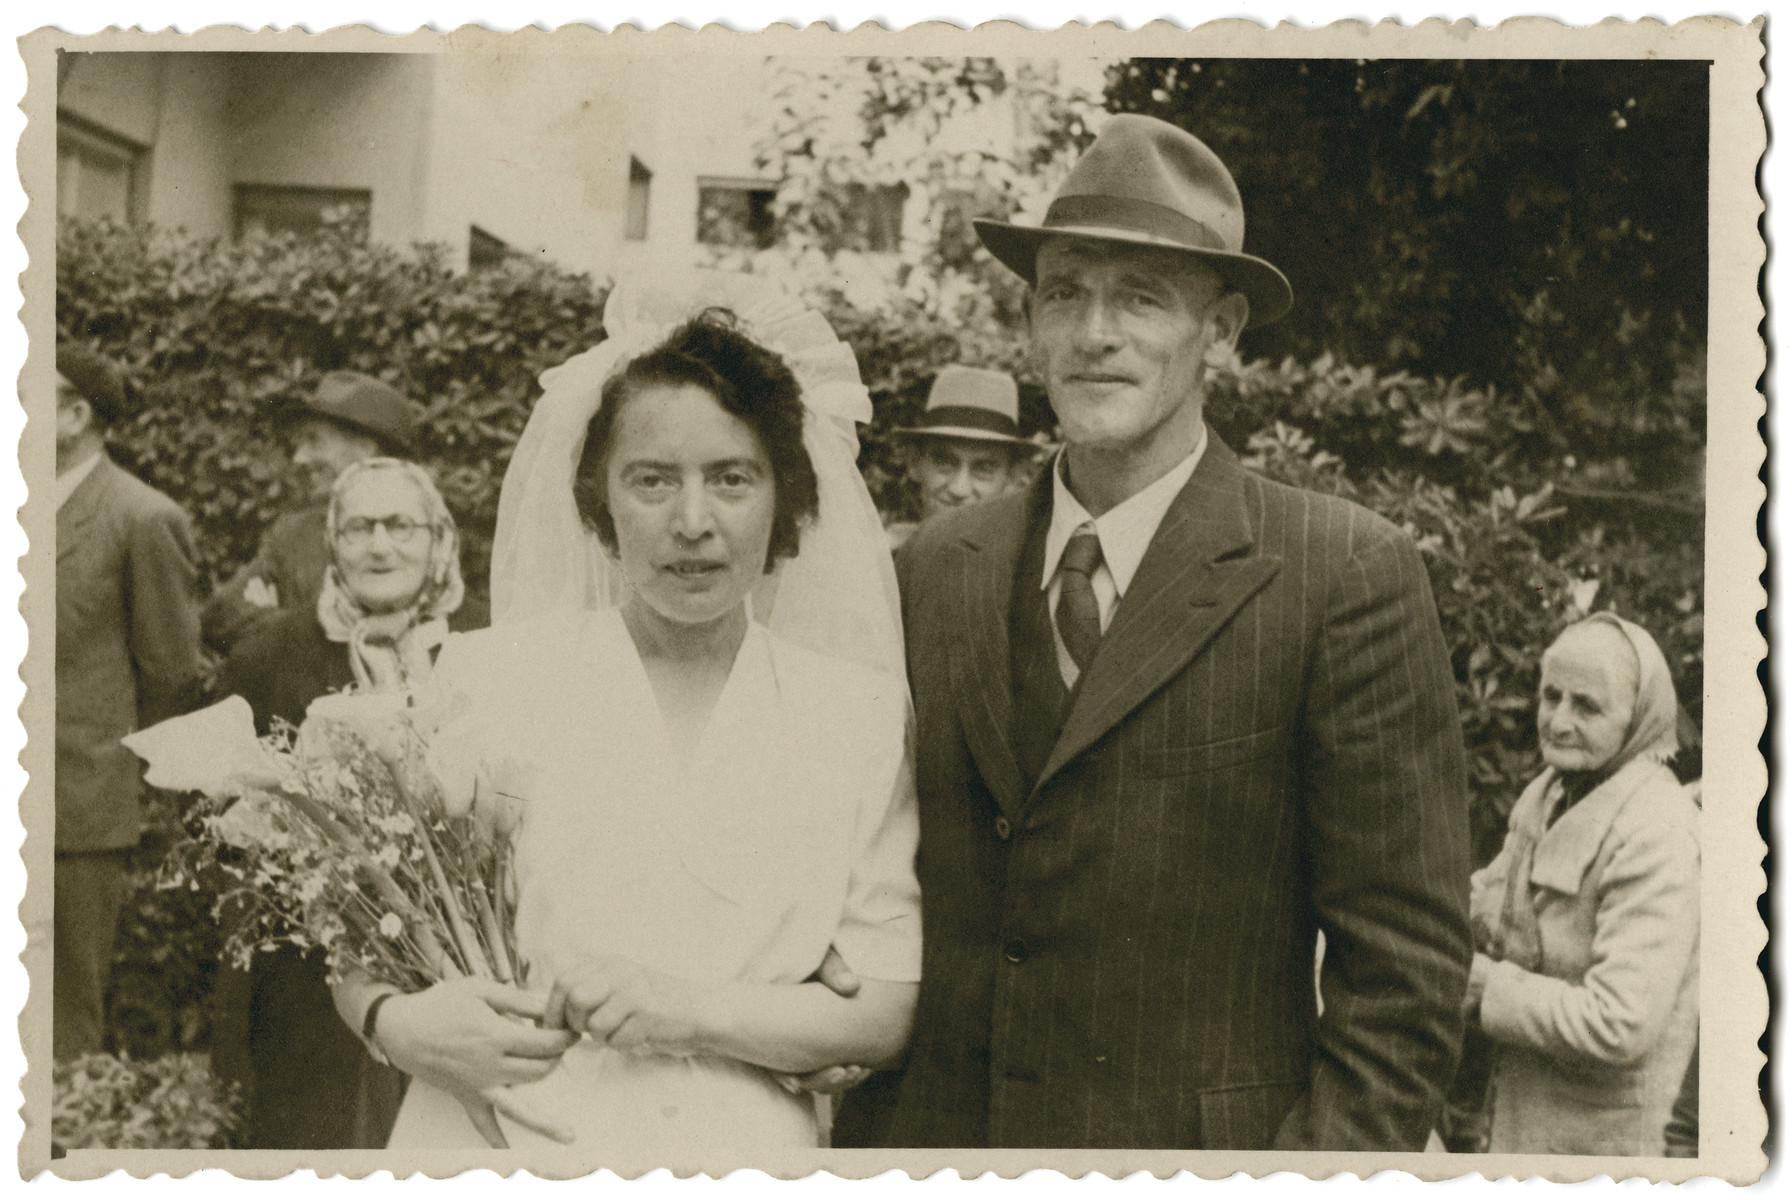 Wedding portrait of Erich de-Beer with Hannah Rabinovic after his release from prisoner-of-war camp.